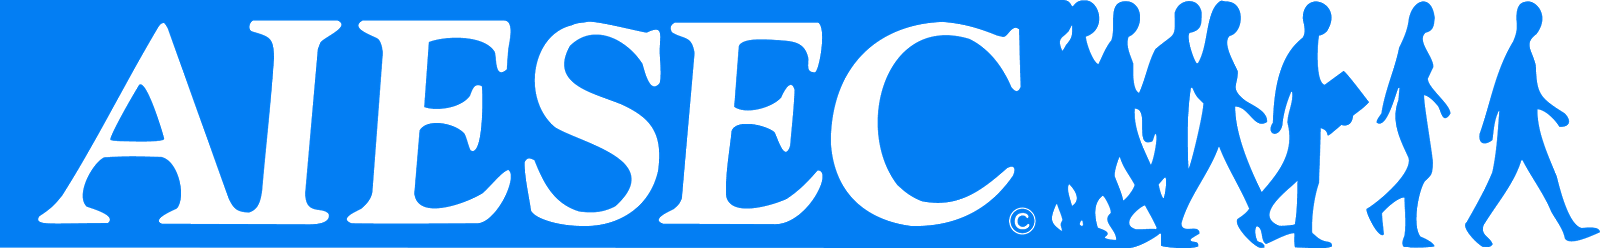 logo for AIESEC